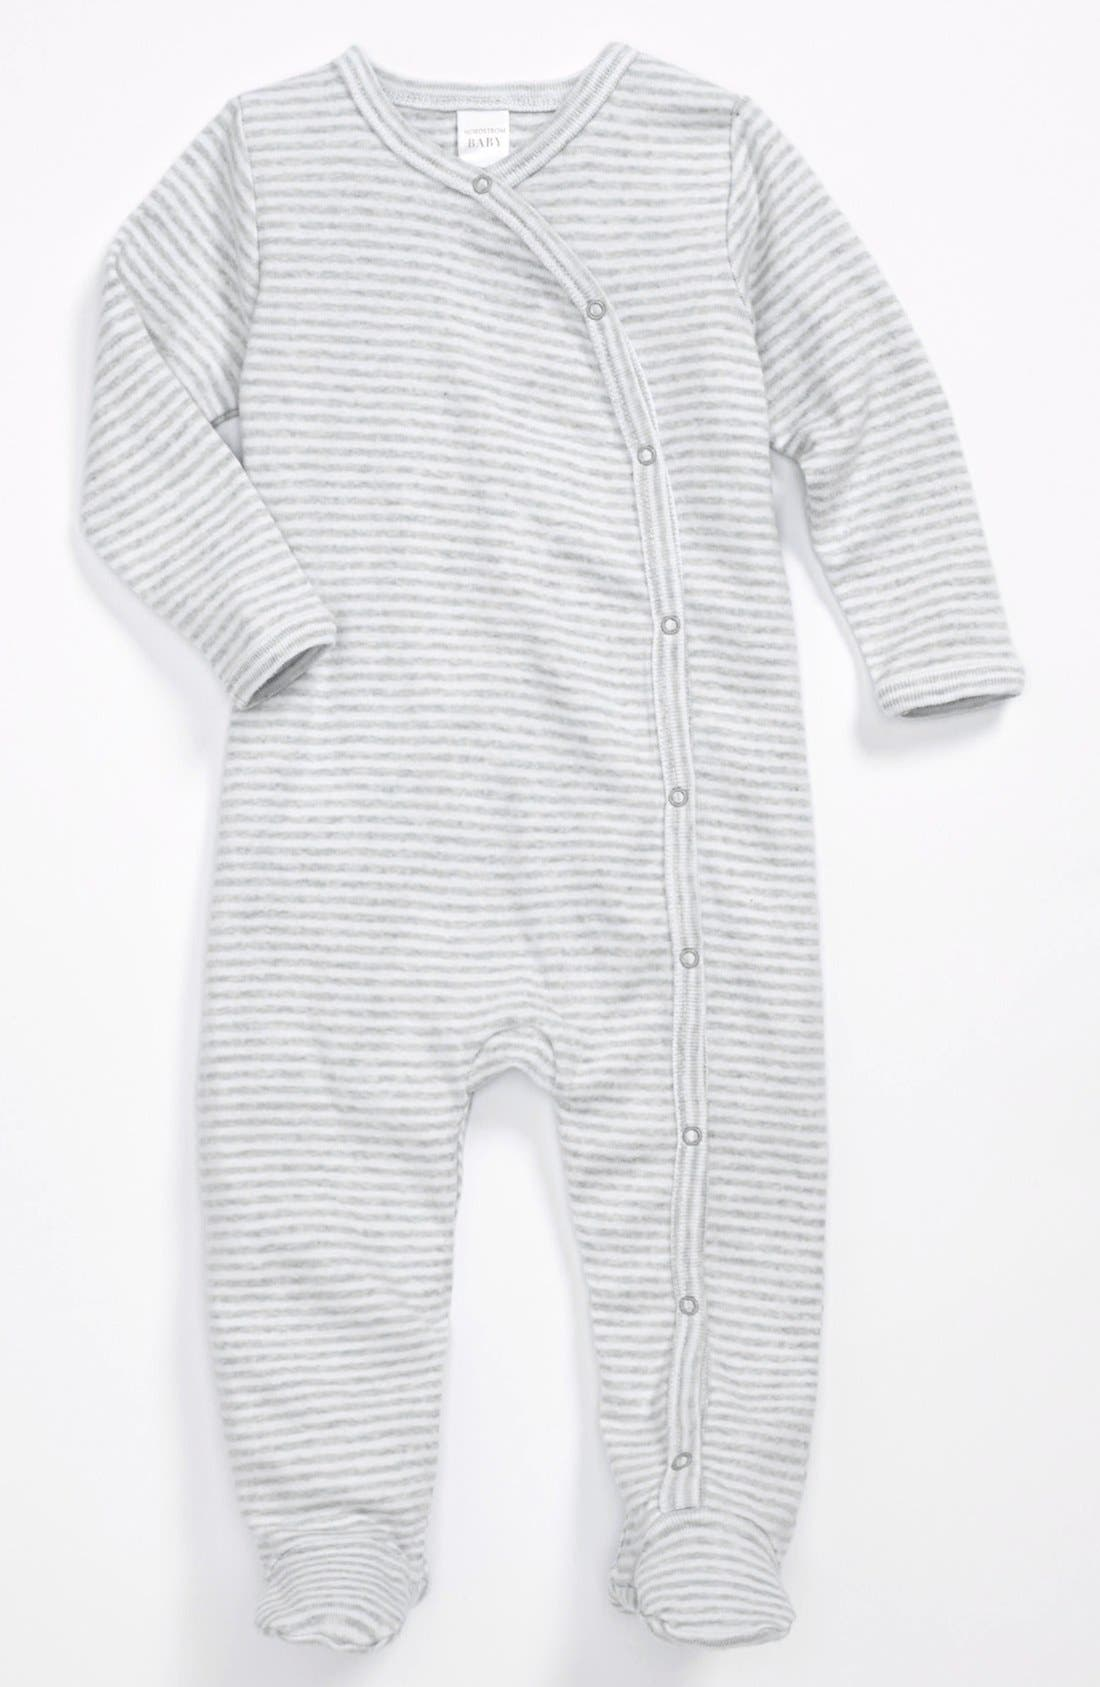 Main Image - Nordstrom Baby 'Welcome Home' Footie (Baby)